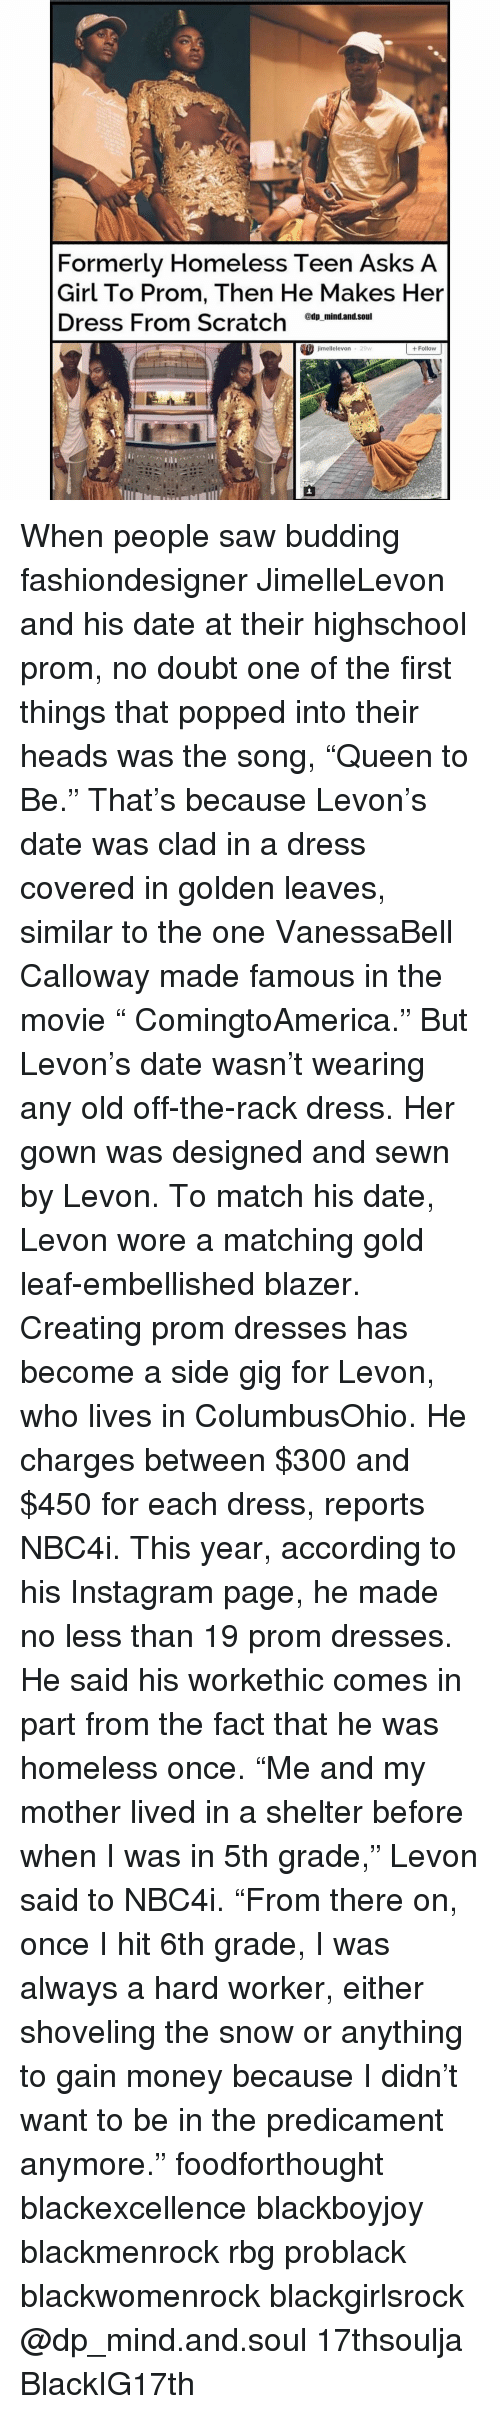 """Homeless, Memes, and Pop: Formerly Homeless Teen Asks A  Girl To Prom, Then He Makes Her  Dress From Scratch  @tip mind.and.Soul  jimellelevon  Follow  29W When people saw budding fashiondesigner JimelleLevon and his date at their highschool prom, no doubt one of the first things that popped into their heads was the song, """"Queen to Be."""" That's because Levon's date was clad in a dress covered in golden leaves, similar to the one VanessaBell Calloway made famous in the movie """" ComingtoAmerica."""" But Levon's date wasn't wearing any old off-the-rack dress. Her gown was designed and sewn by Levon. To match his date, Levon wore a matching gold leaf-embellished blazer. Creating prom dresses has become a side gig for Levon, who lives in ColumbusOhio. He charges between $300 and $450 for each dress, reports NBC4i. This year, according to his Instagram page, he made no less than 19 prom dresses. He said his workethic comes in part from the fact that he was homeless once. """"Me and my mother lived in a shelter before when I was in 5th grade,"""" Levon said to NBC4i. """"From there on, once I hit 6th grade, I was always a hard worker, either shoveling the snow or anything to gain money because I didn't want to be in the predicament anymore."""" foodforthought blackexcellence blackboyjoy blackmenrock rbg problack blackwomenrock blackgirlsrock @dp_mind.and.soul 17thsoulja BlackIG17th"""